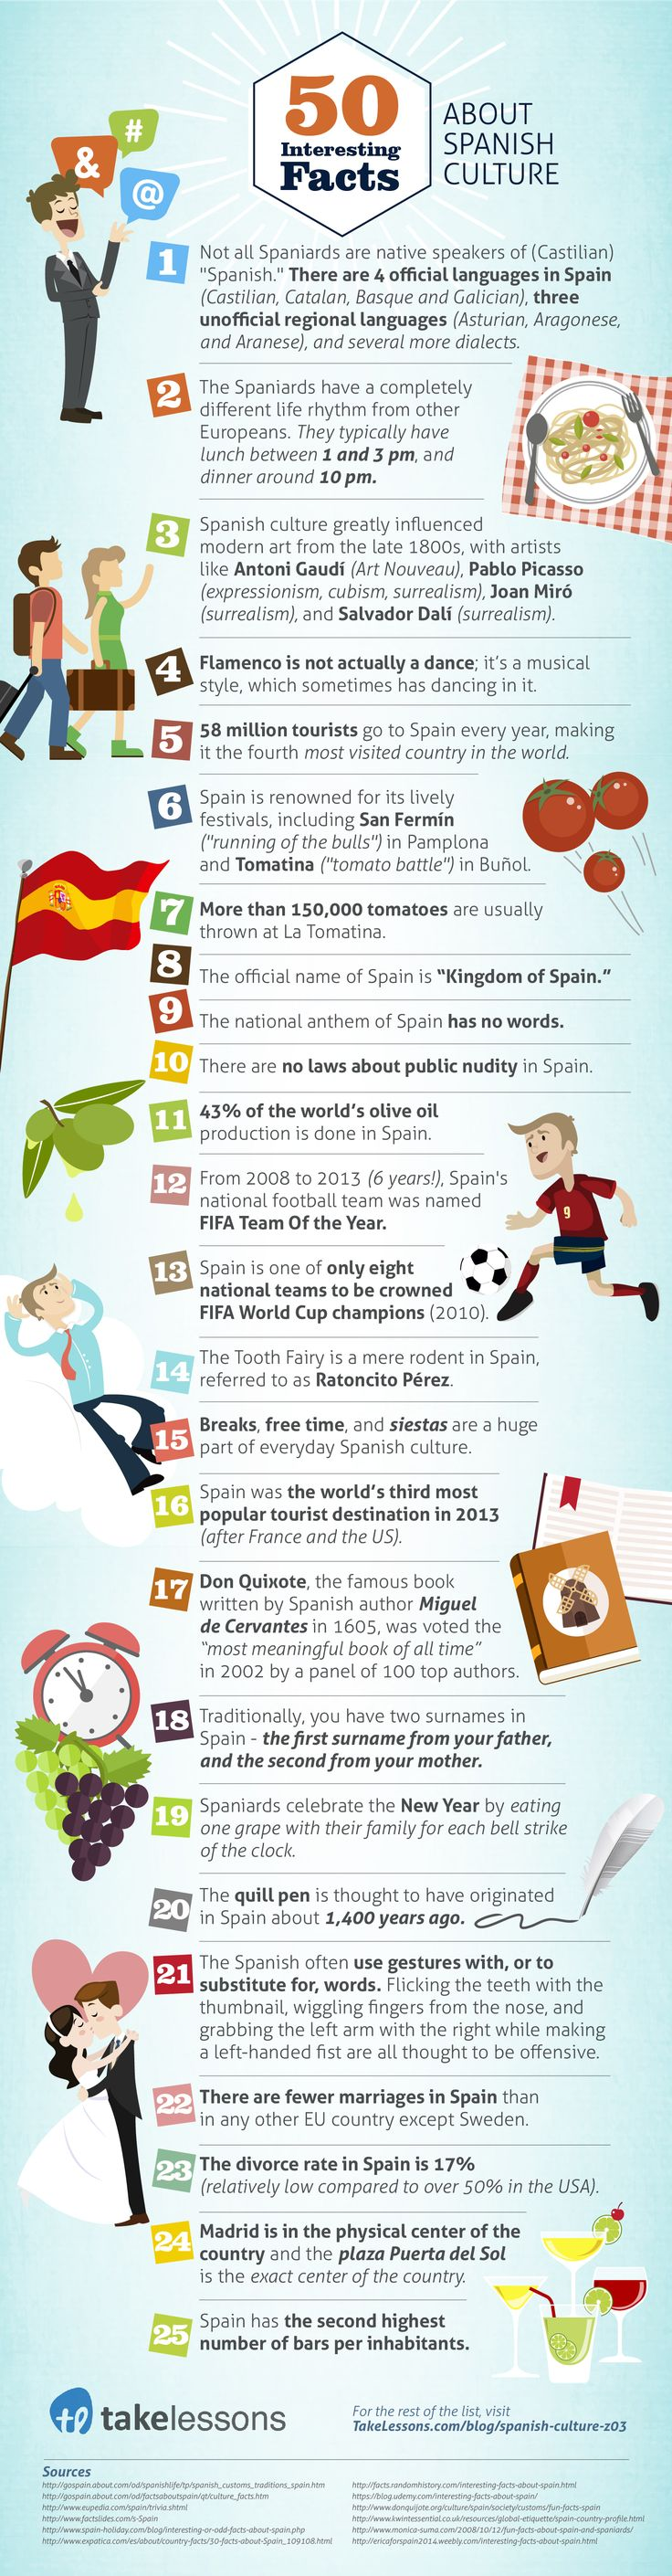 Great facts about the culture of Spain! Culture of